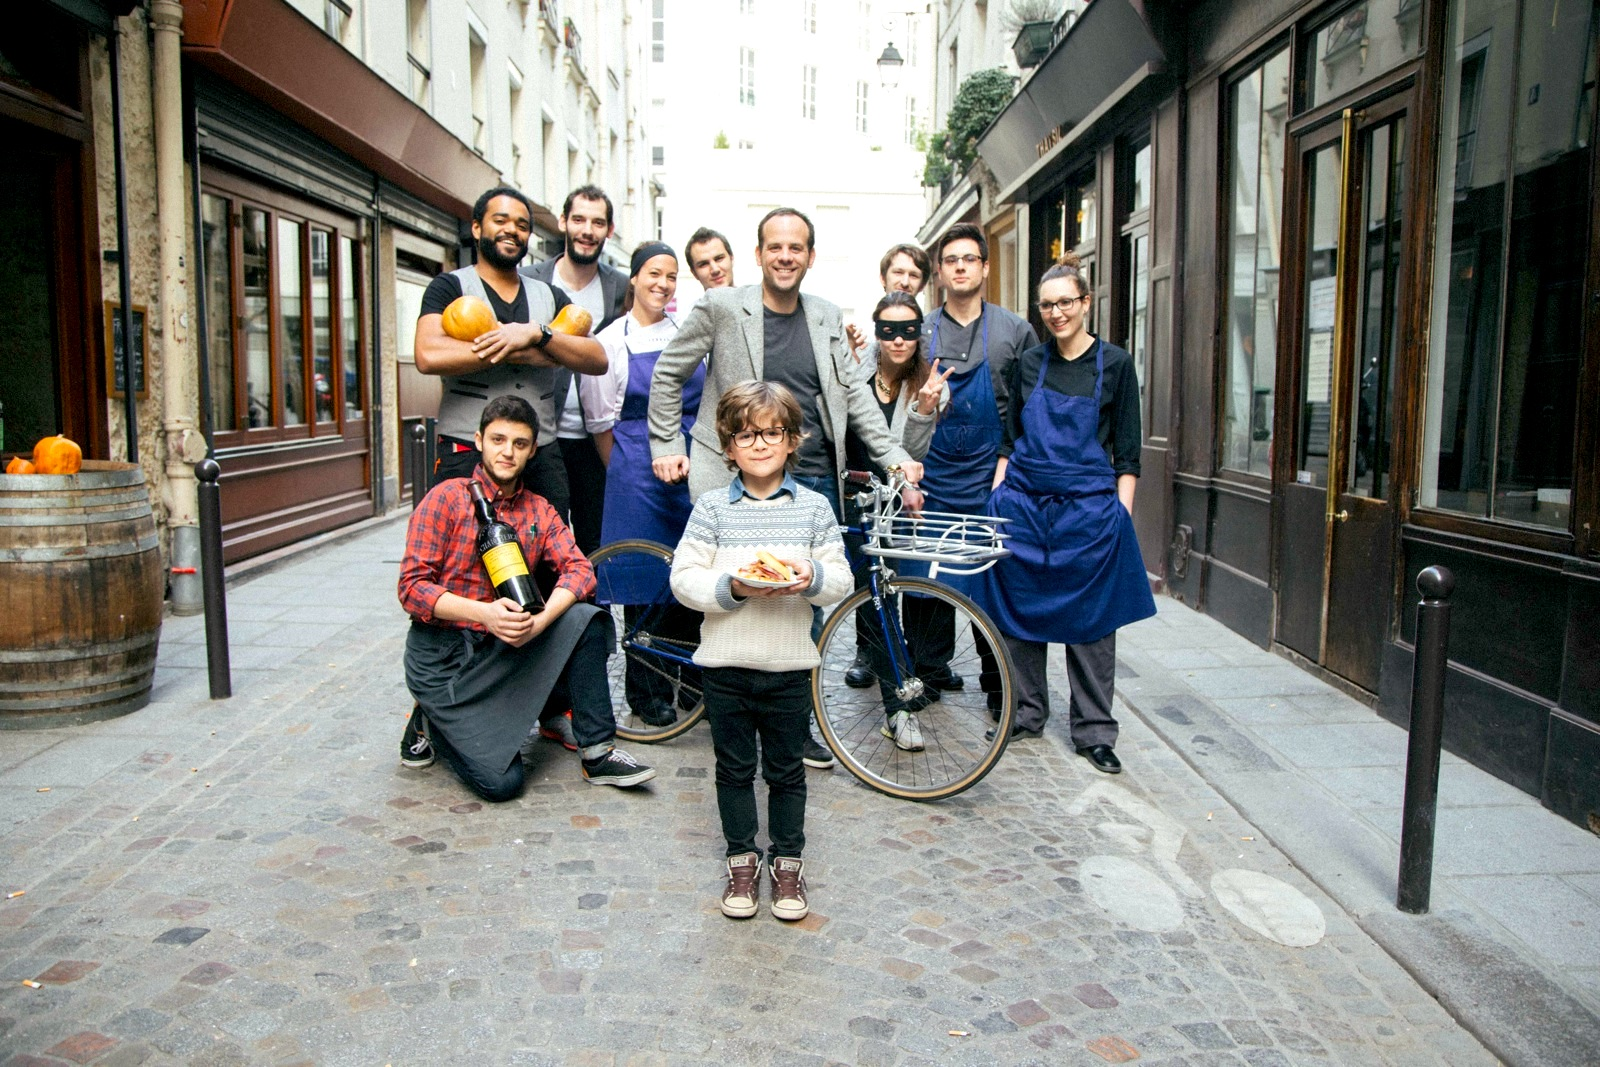 April Events in Paris: Banlieues Bleues, Jean Paul Gaultier at the Grand Palais, Céline Pham at Table Ronde, Amuse Gueule, Super Barquette, Les Plans d'Avril Festival, and Le Fooding's Priceless Souper at Il Brigante.